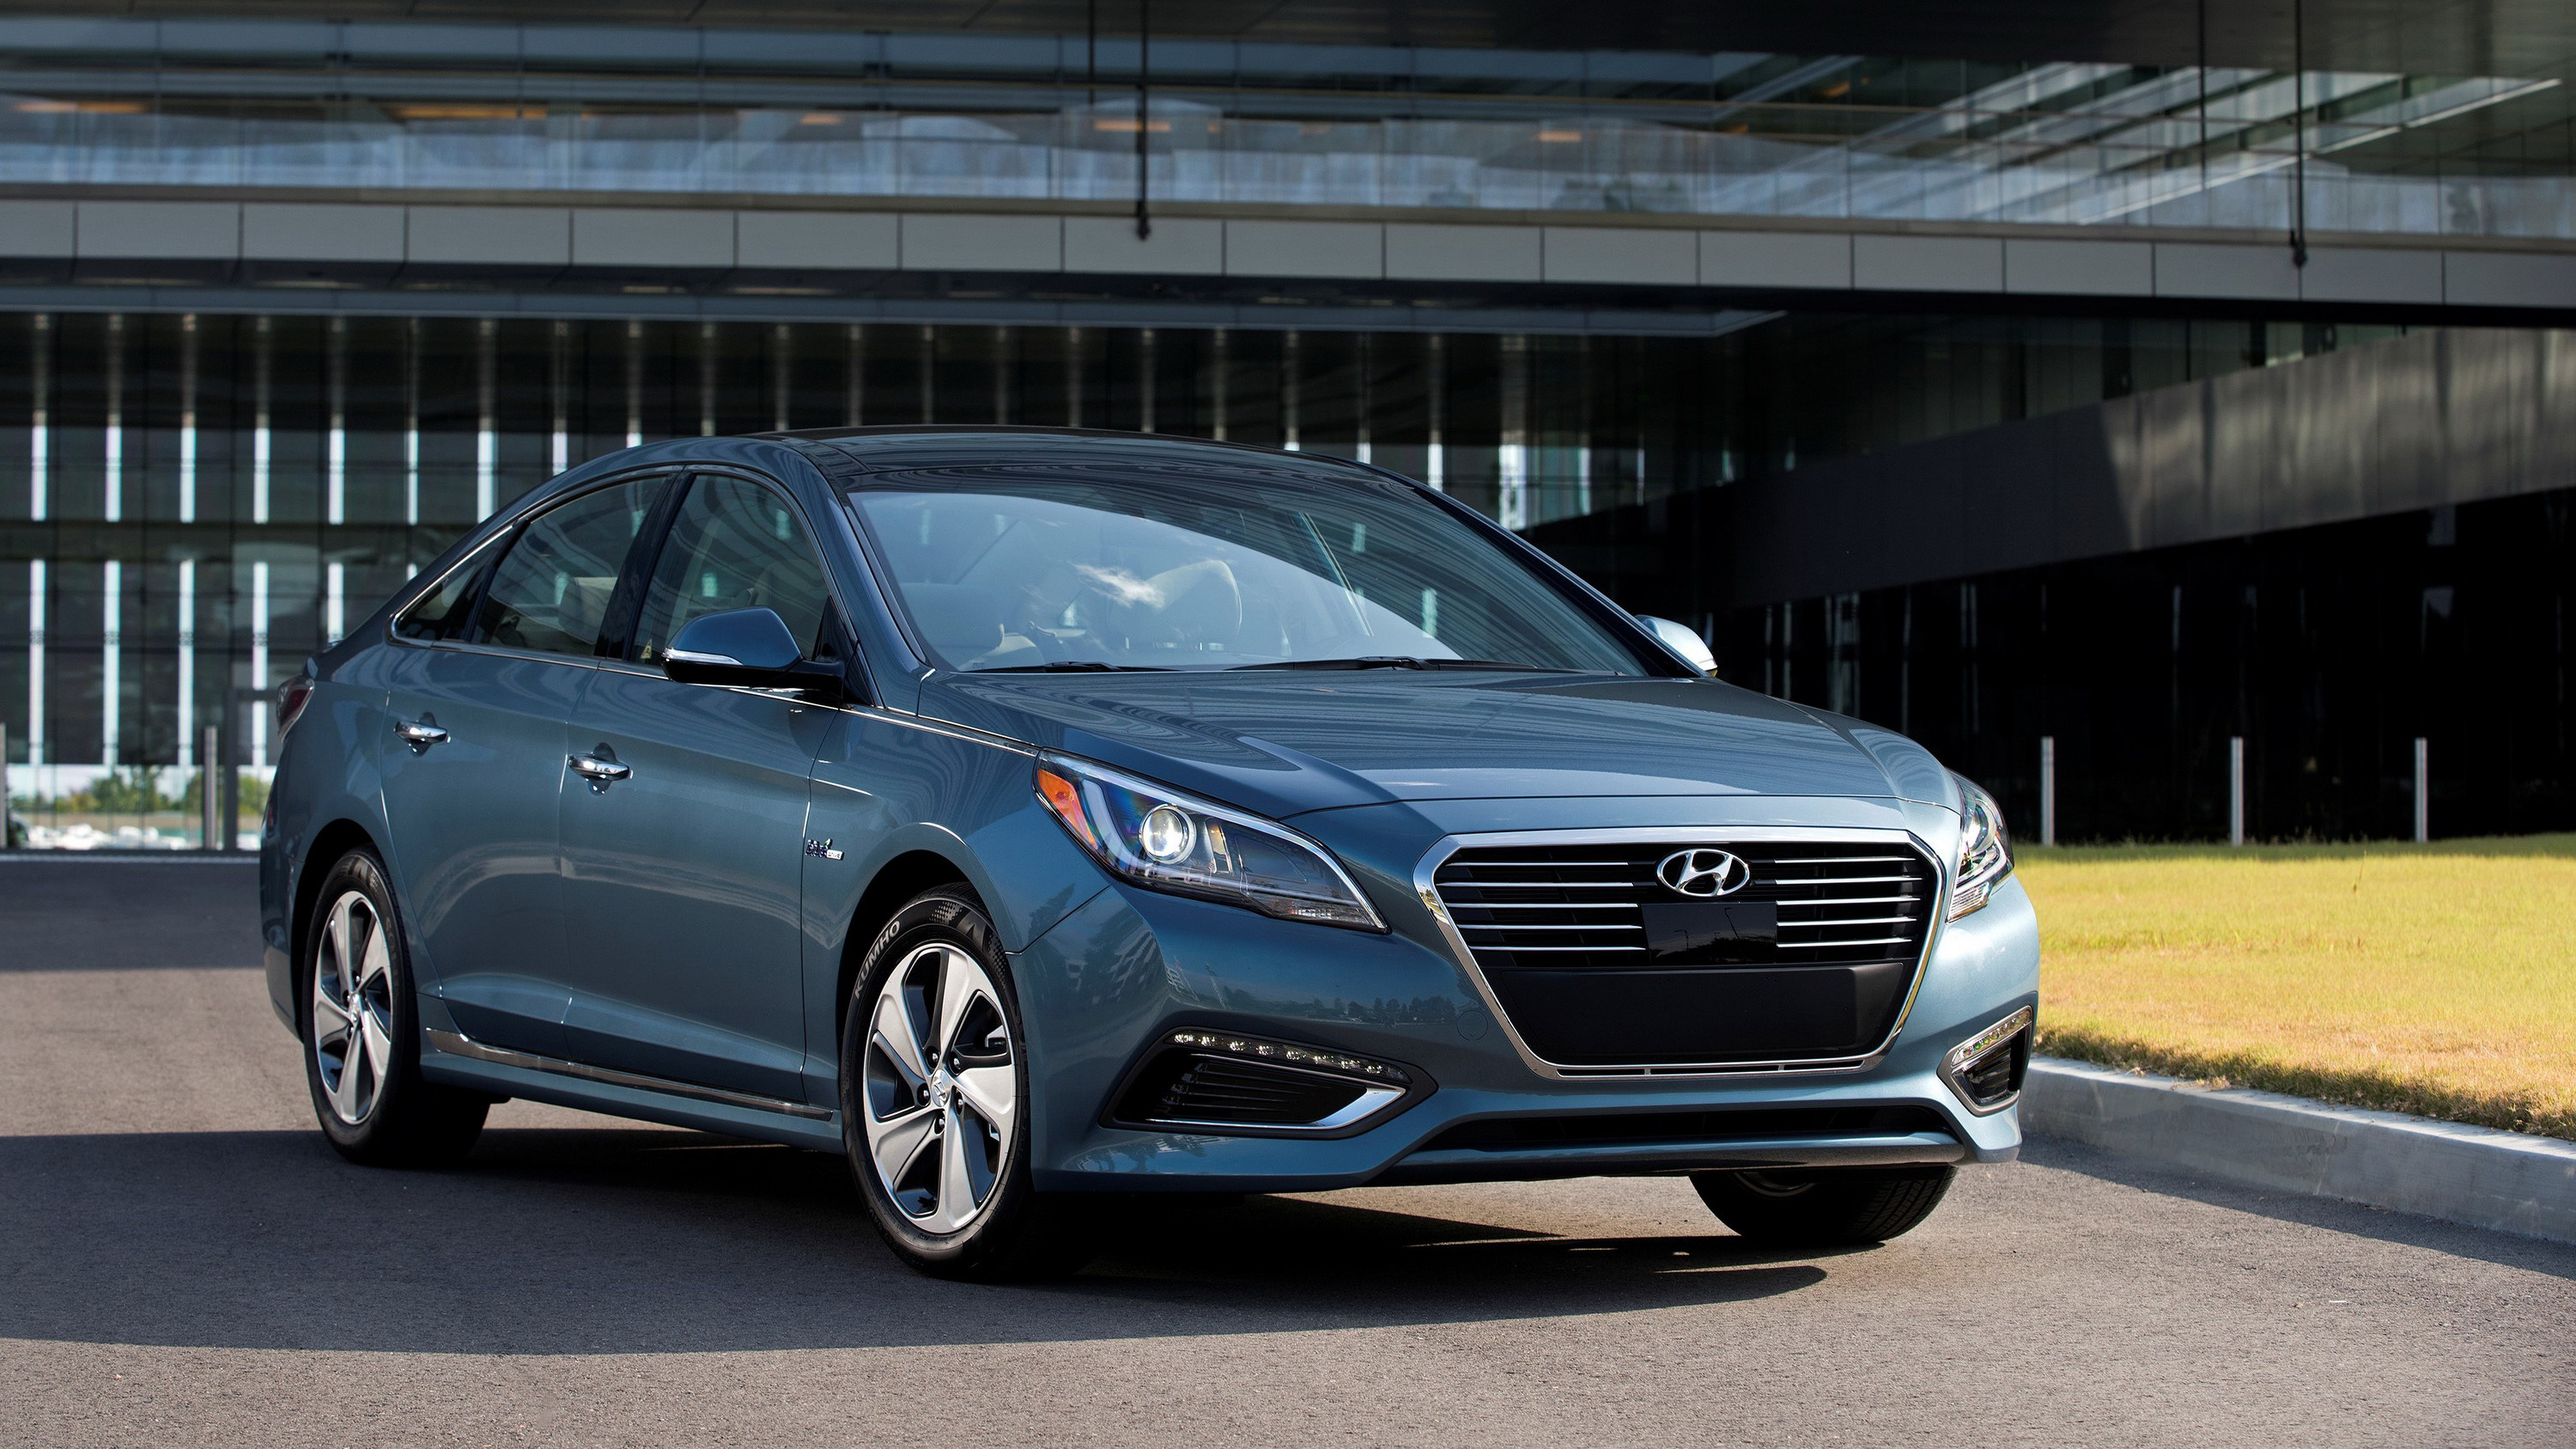 Hyundai s sixth generation sonata 2009 2014 sold pretty well here in the u s but over in the brand s home turf south korea the car didn t exactly